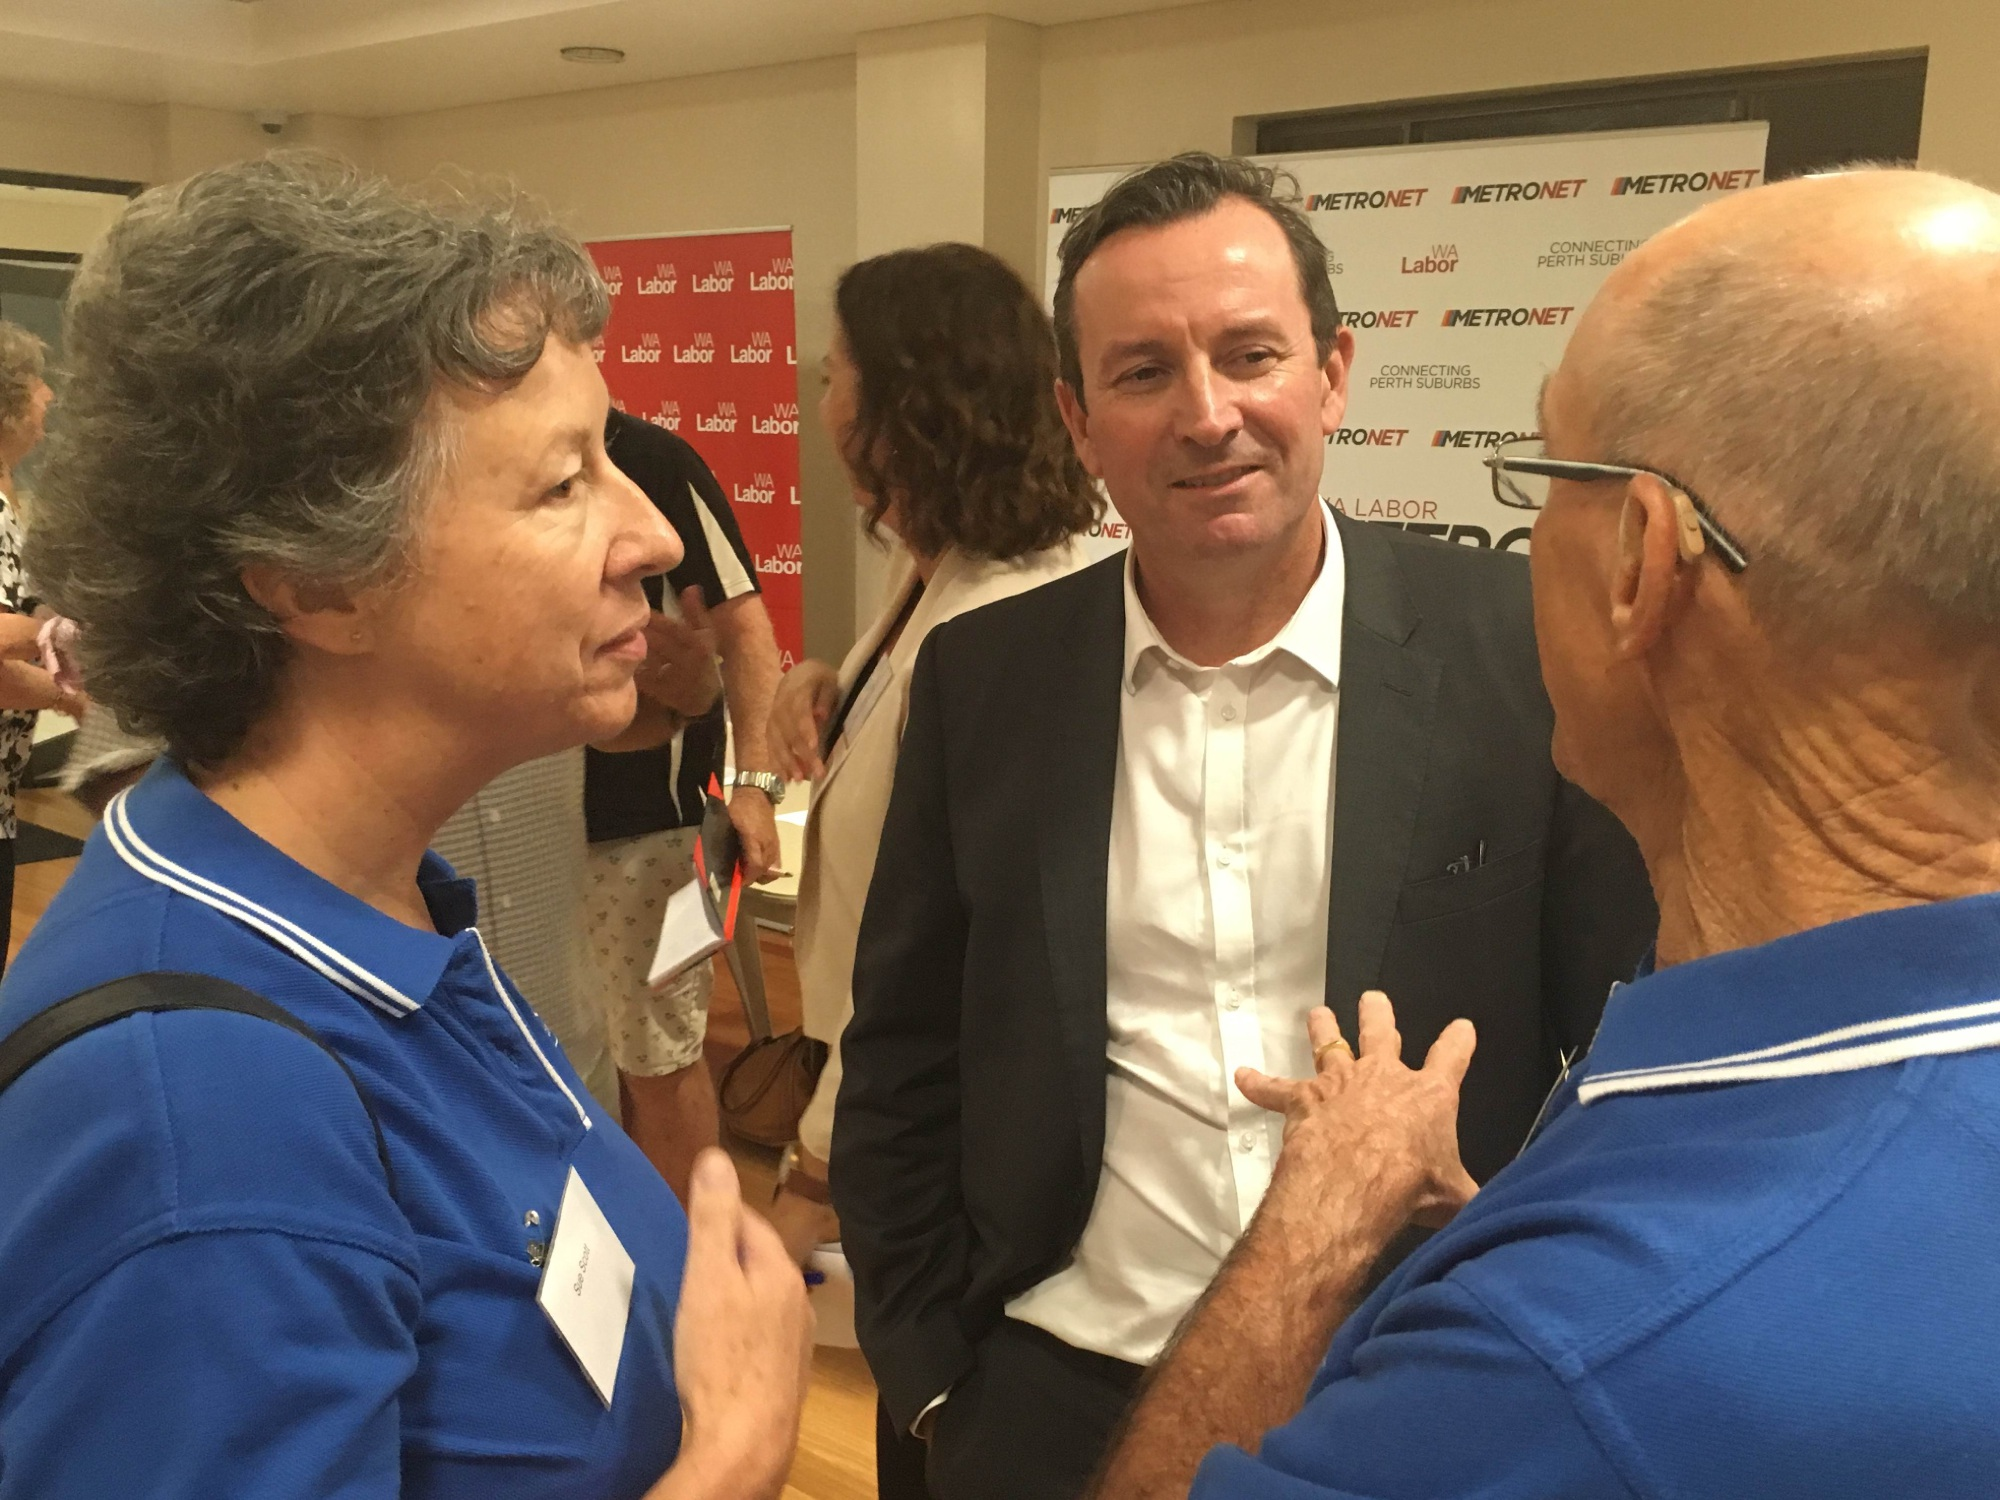 Opposition leader Mark McGowan at the City of Belmont Metronet forum on Monday night.